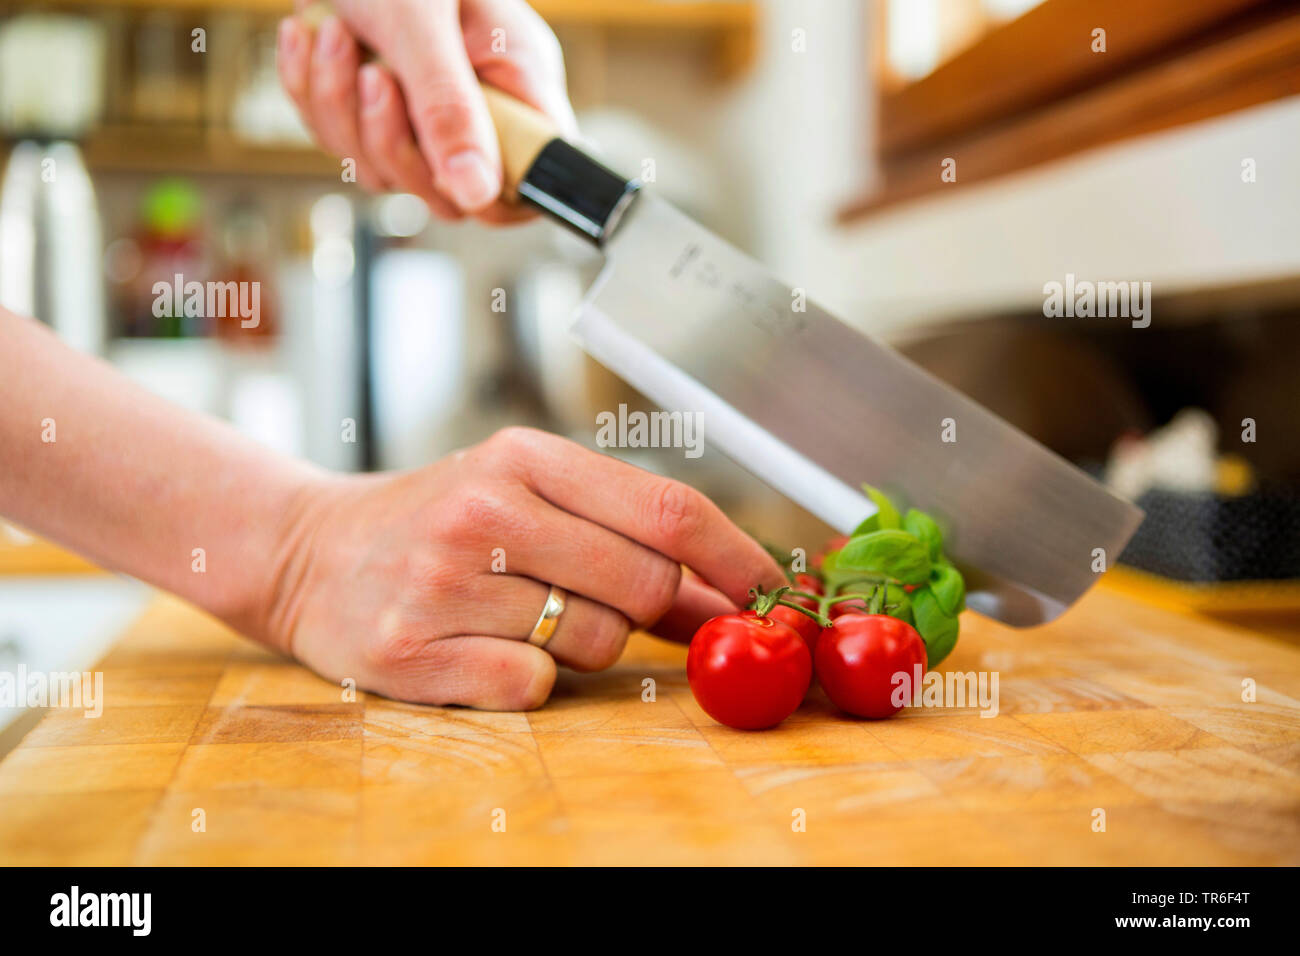 garden tomato (Solanum lycopersicum, Lycopersicon esculentum), cocktail tomatoes with tulsi and kitchen knife on a wooden board, Germany - Stock Image